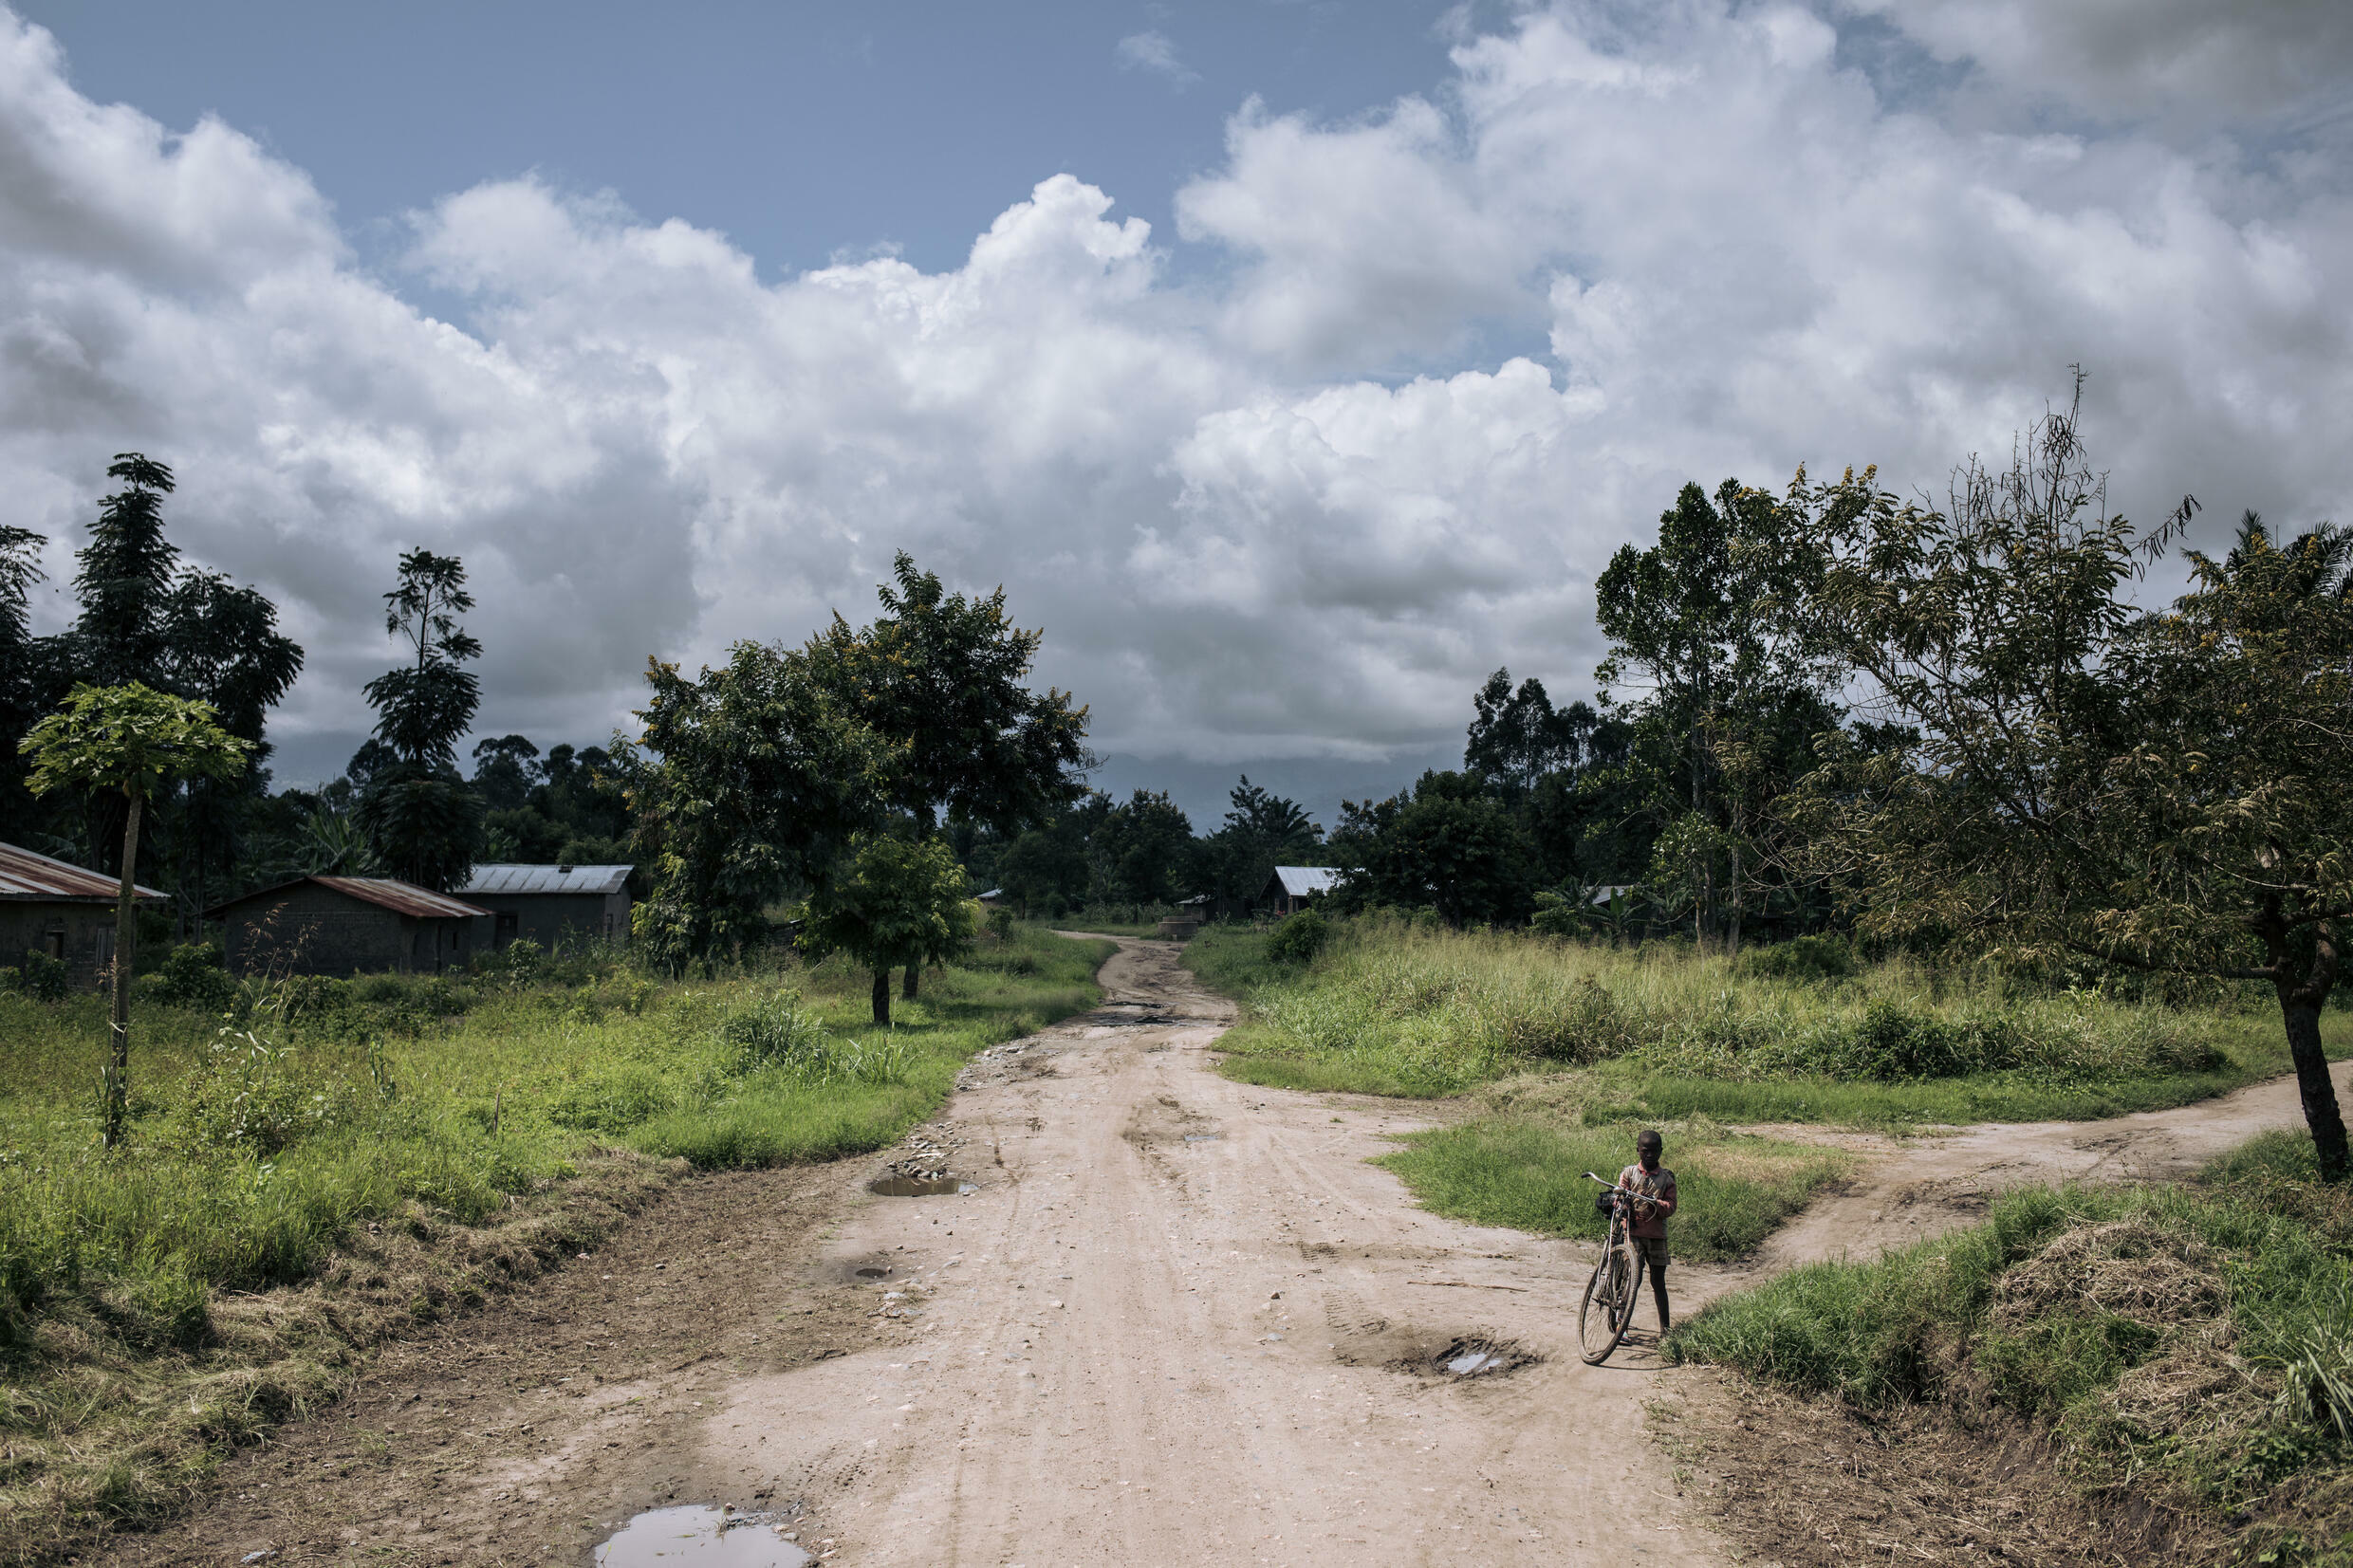 Deserted: A boy rides a bicycle at the entrance to the town Mutwanga. Many residents have fled their homes because of attacks